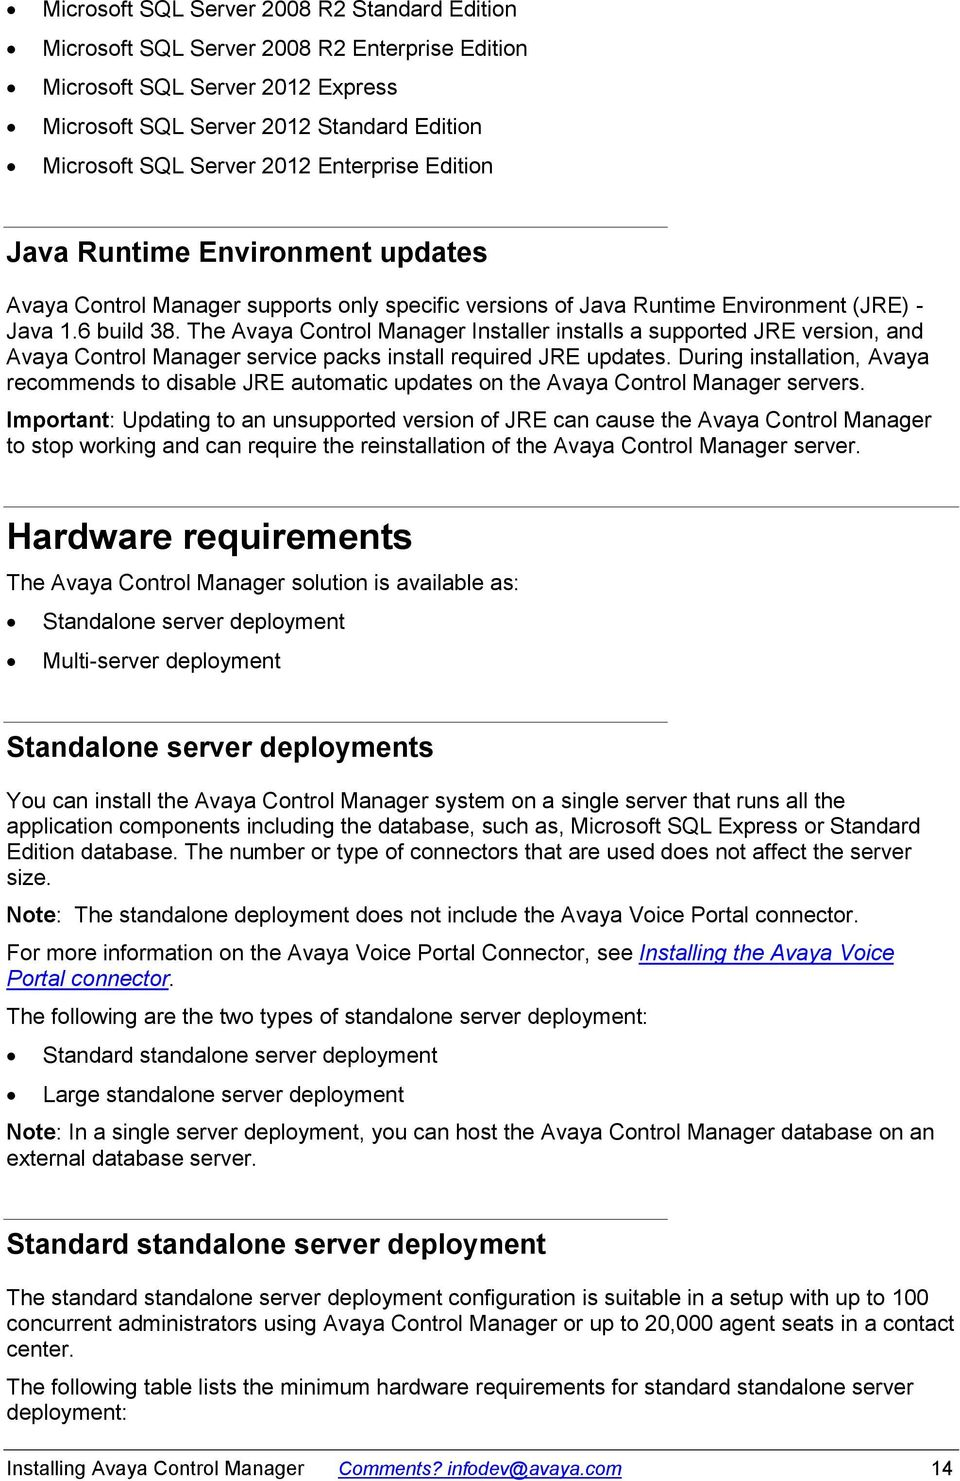 The Avaya Control Manager Installer installs a supported JRE version, and Avaya Control Manager service packs install required JRE updates.